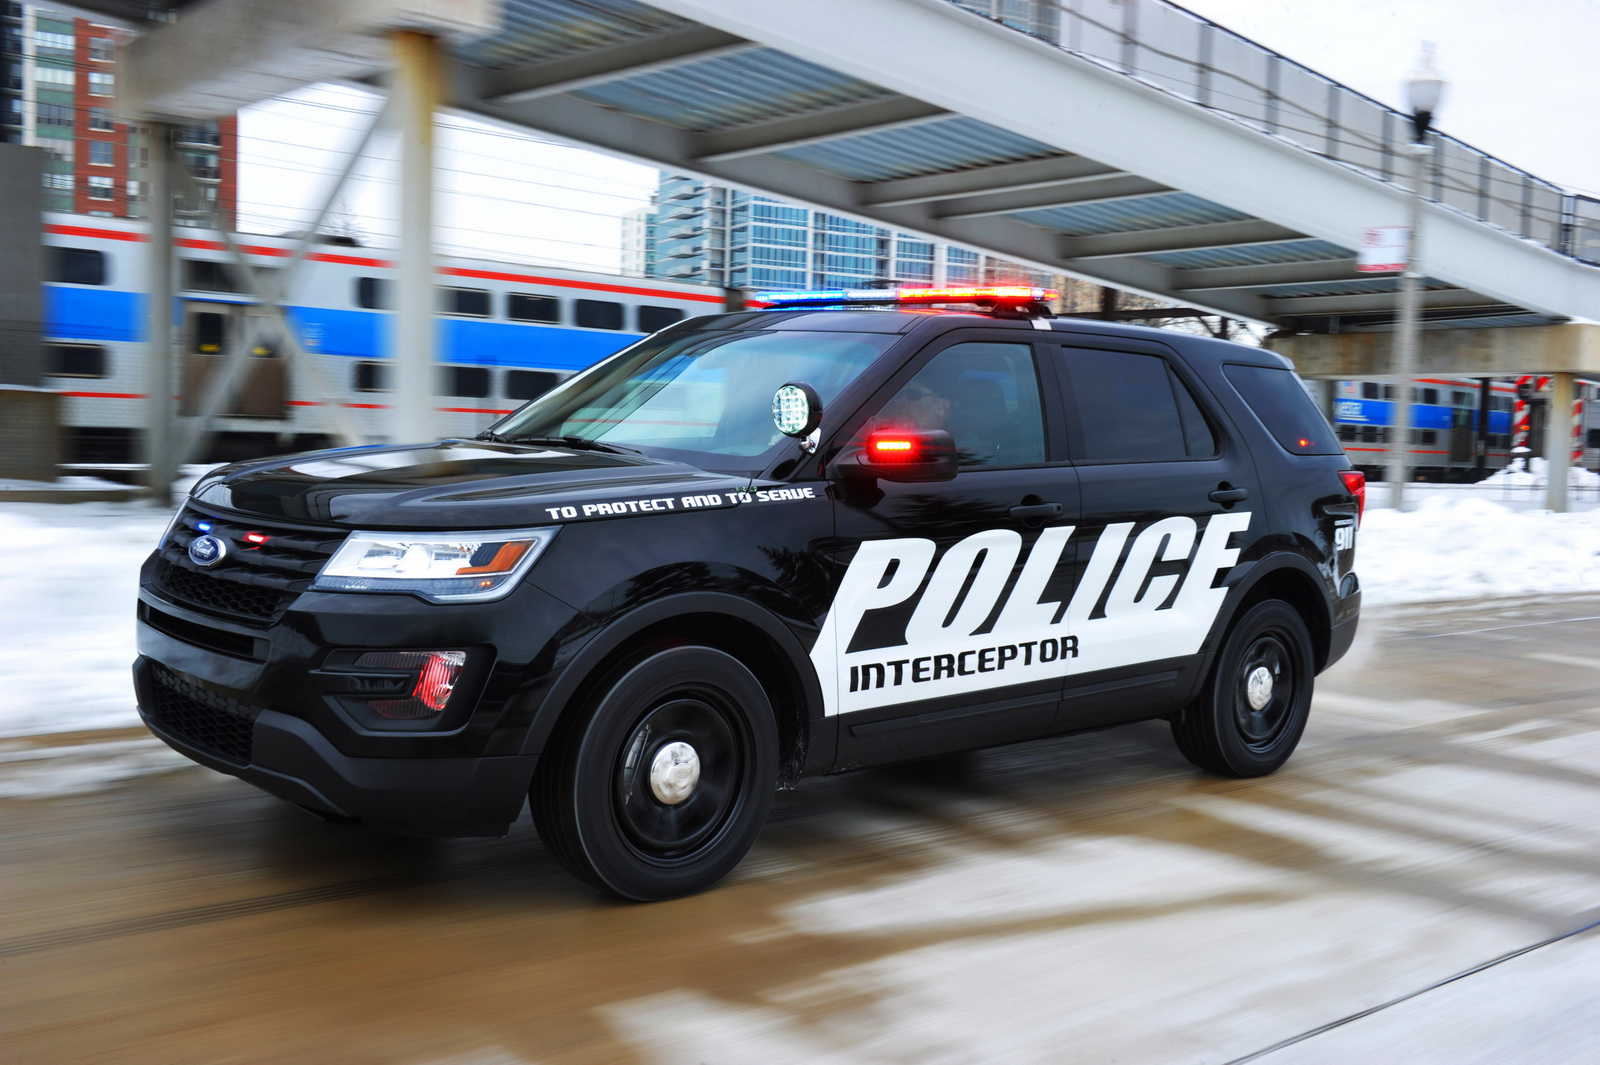 2016 Ford Police Interceptor Utility photo - 3